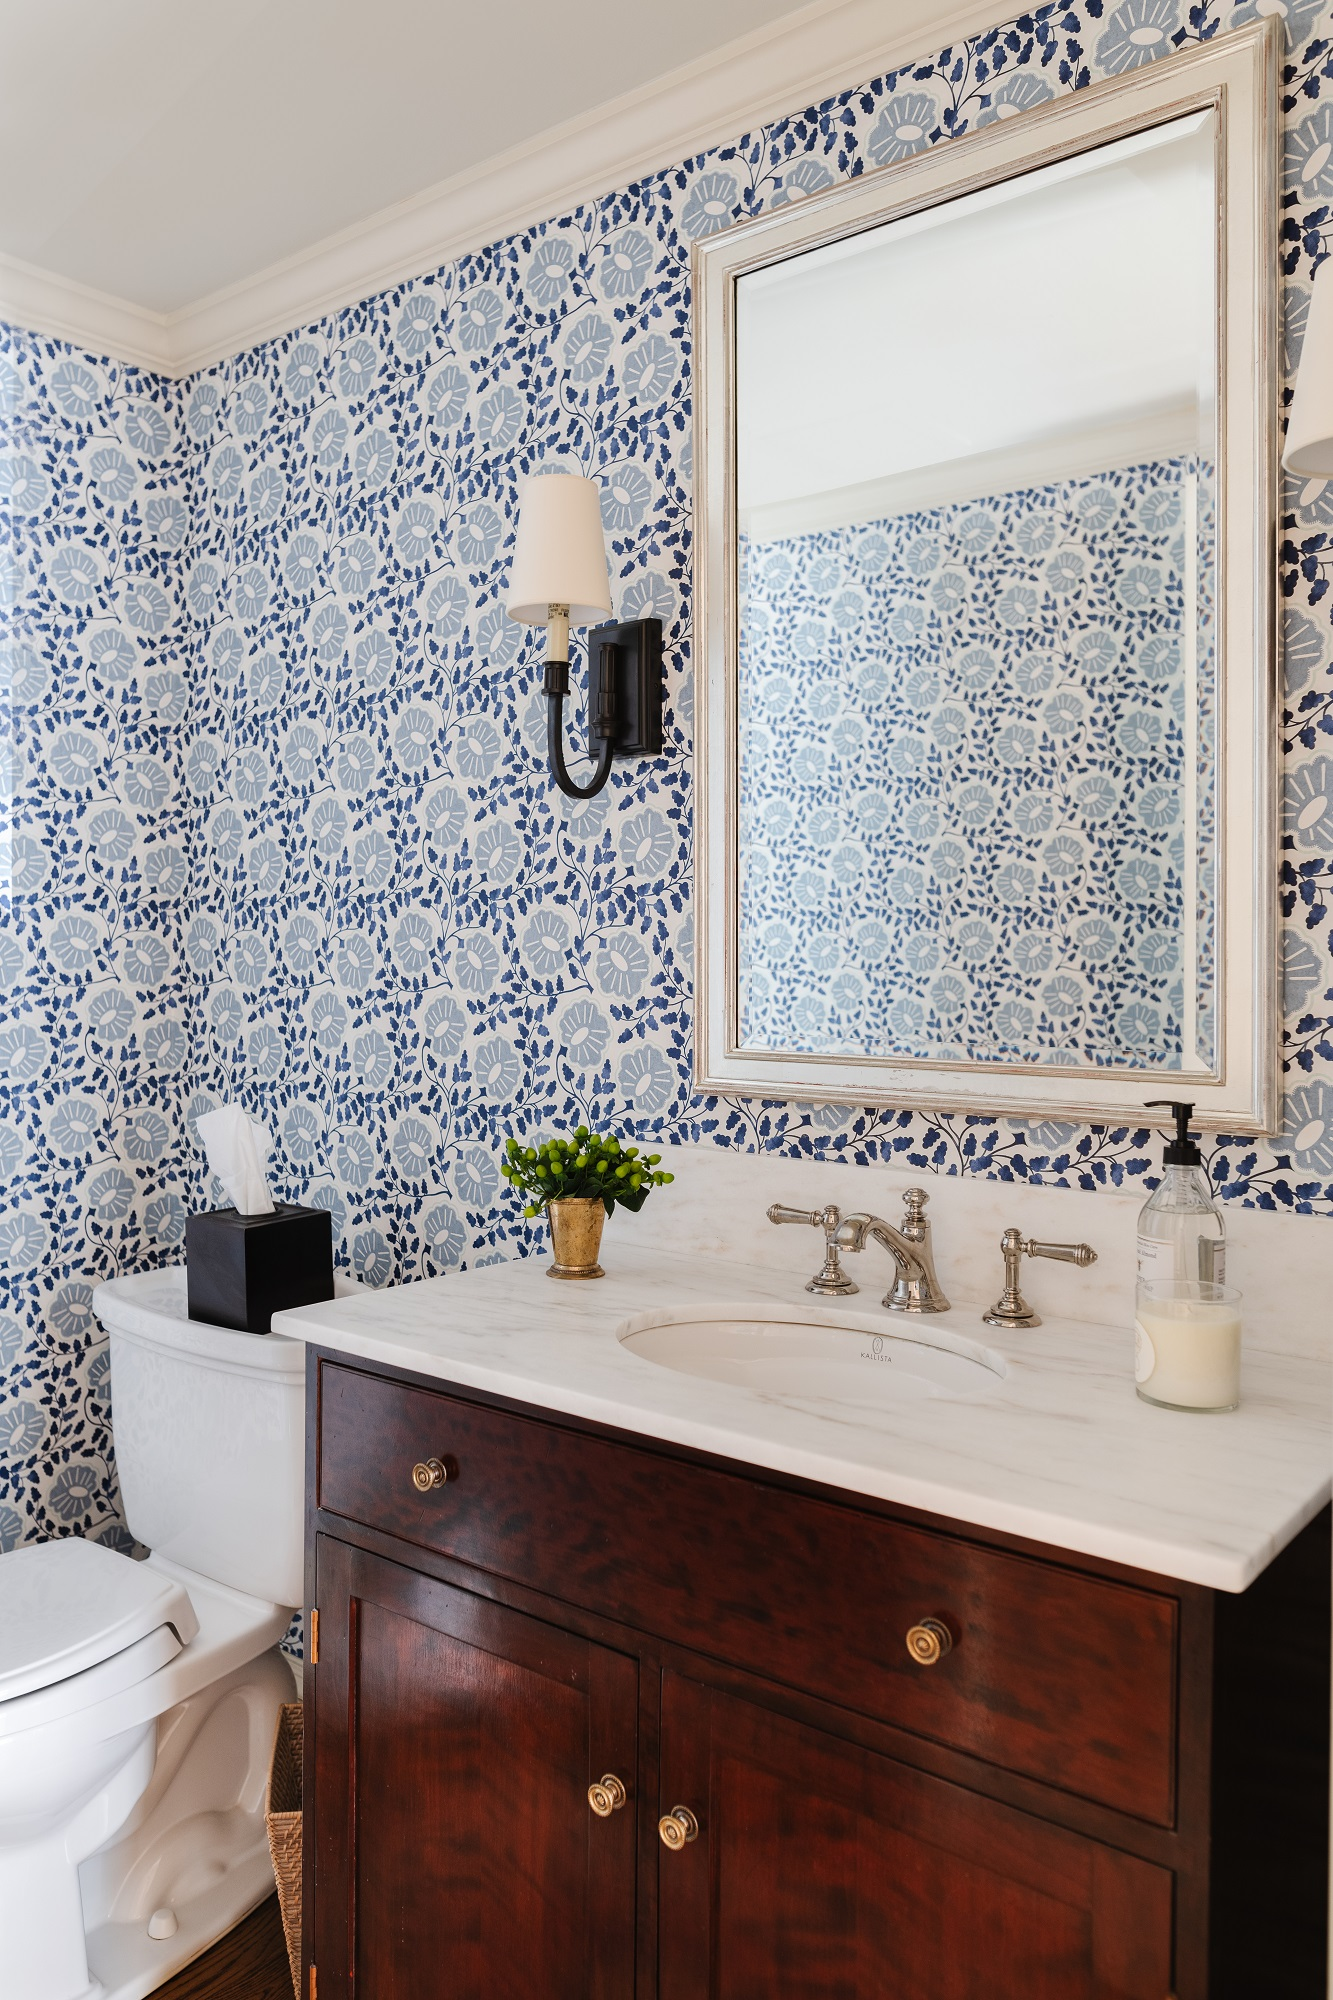 Powder room with blue patterned wallpaper